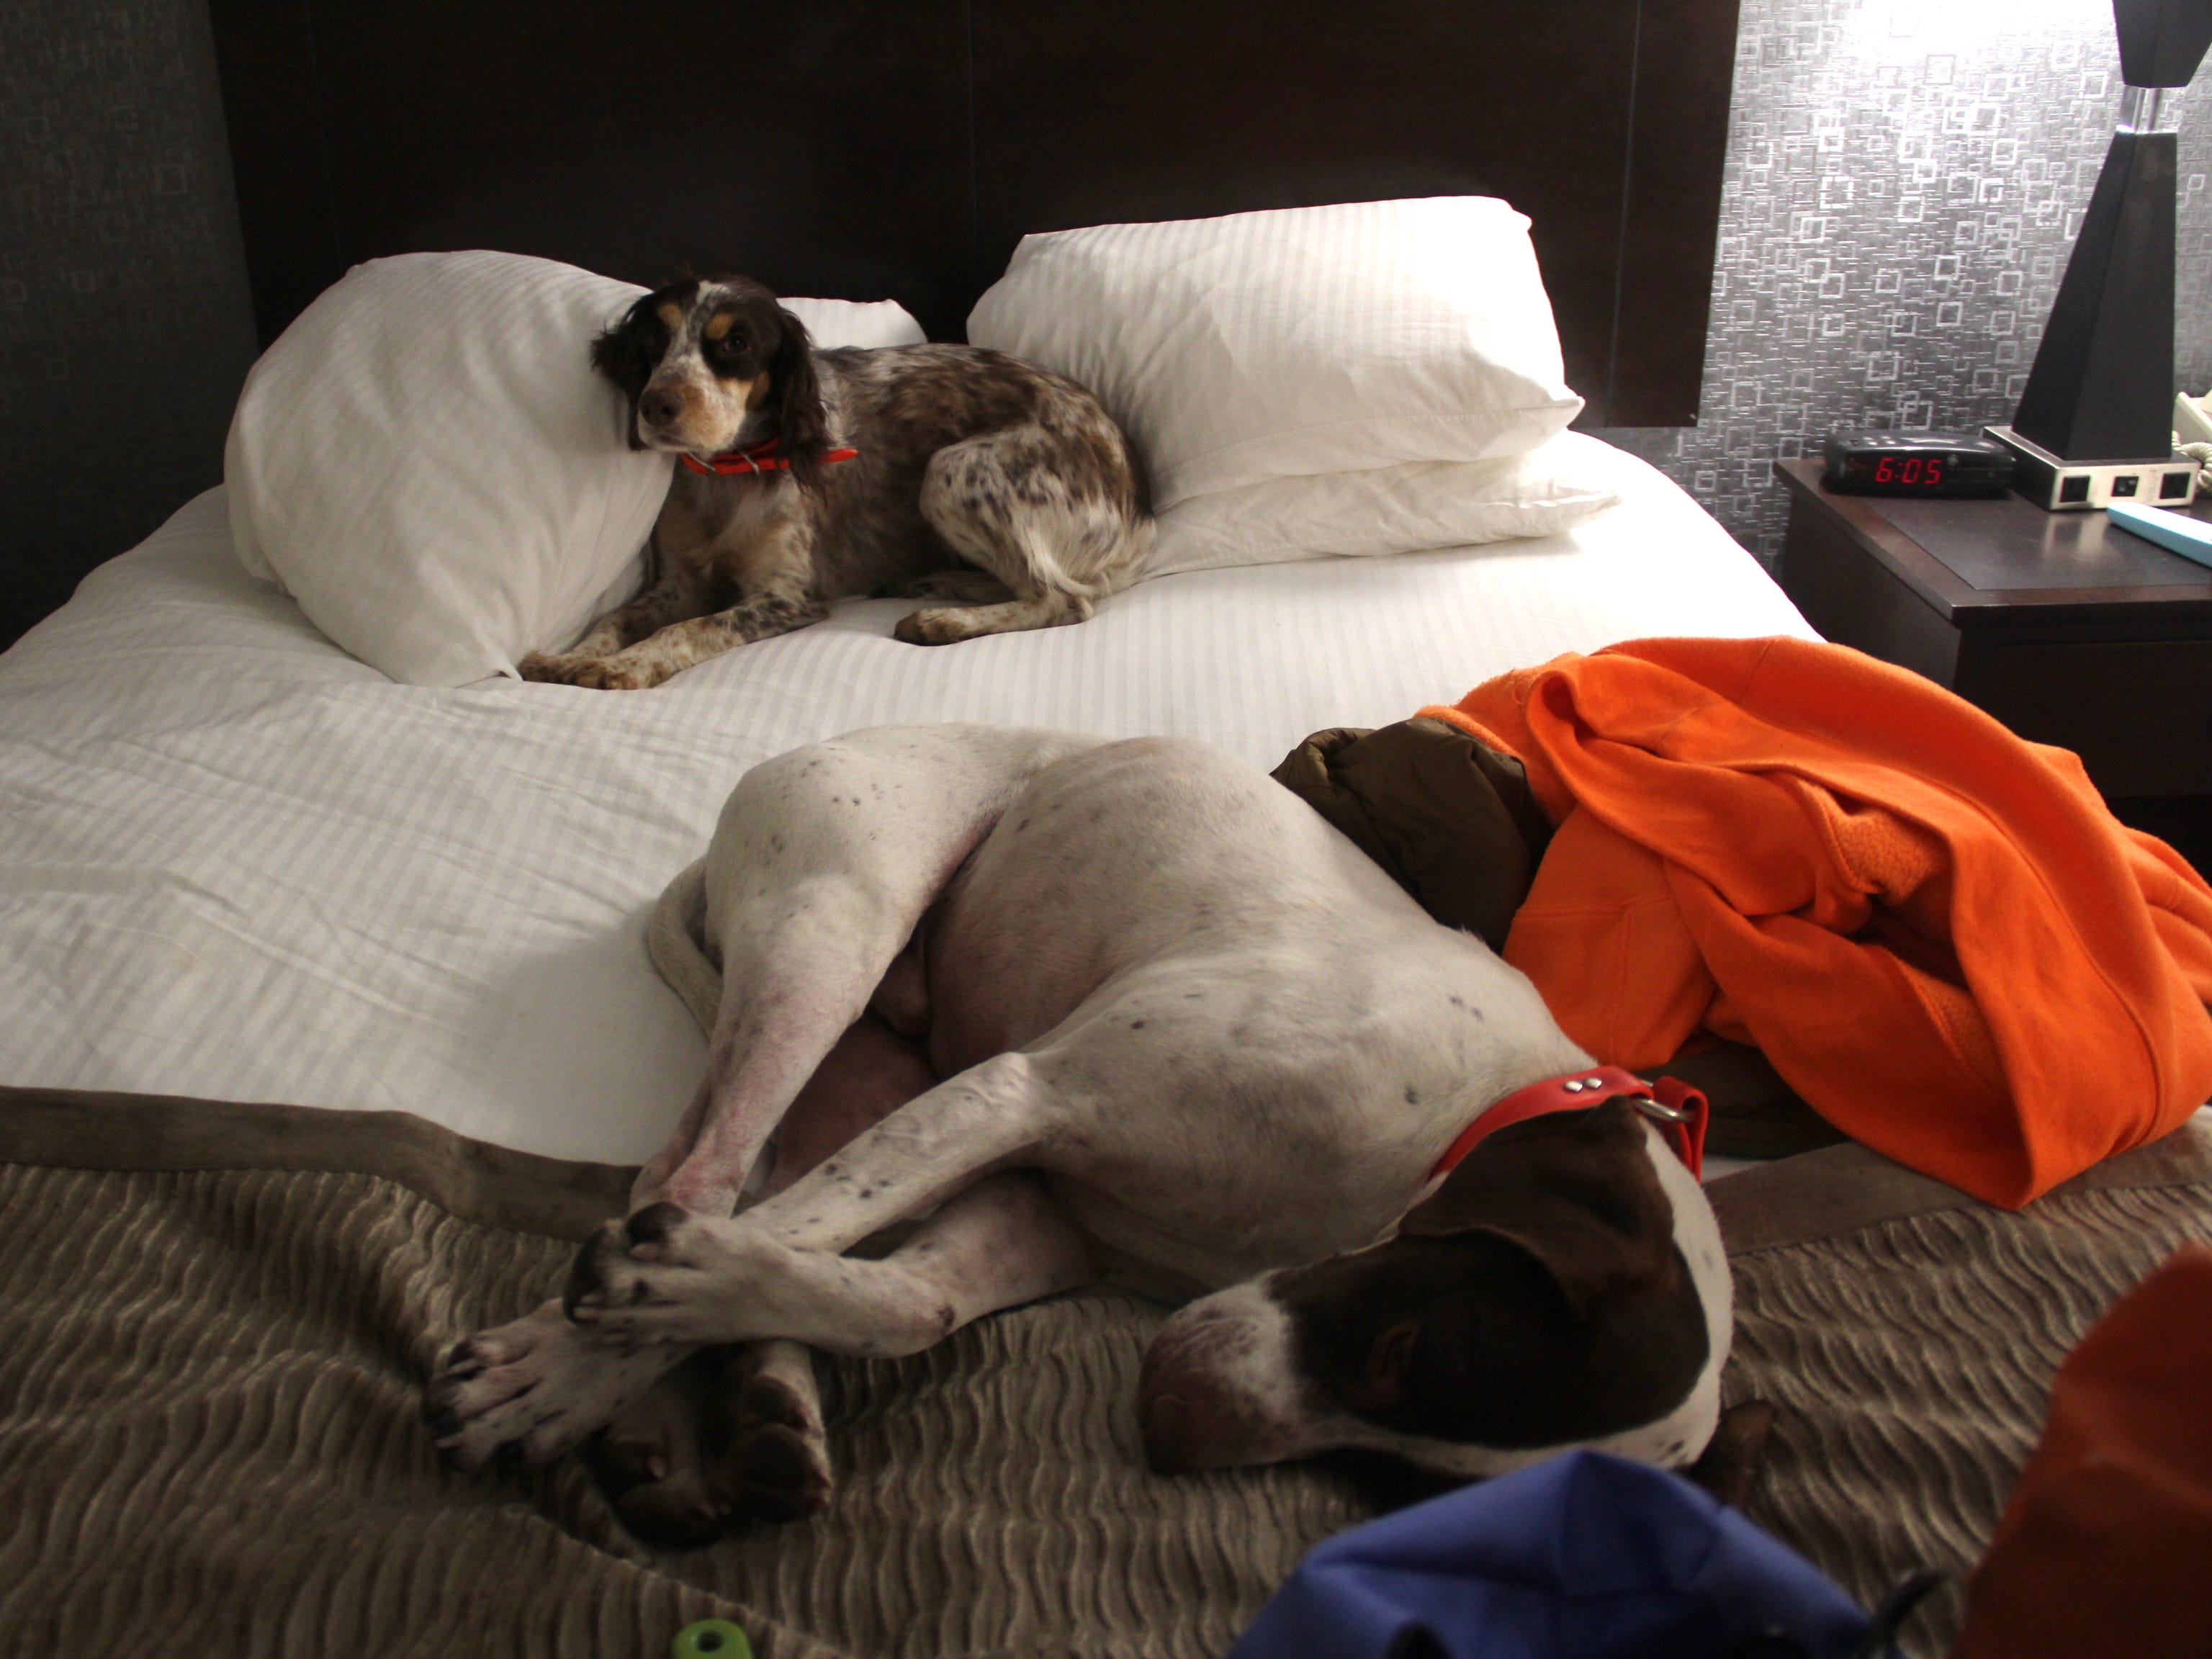 Many hotels in South Dakota, such as the Best Western Ramkota in Aberdeen, welcome hunter and their dogs.